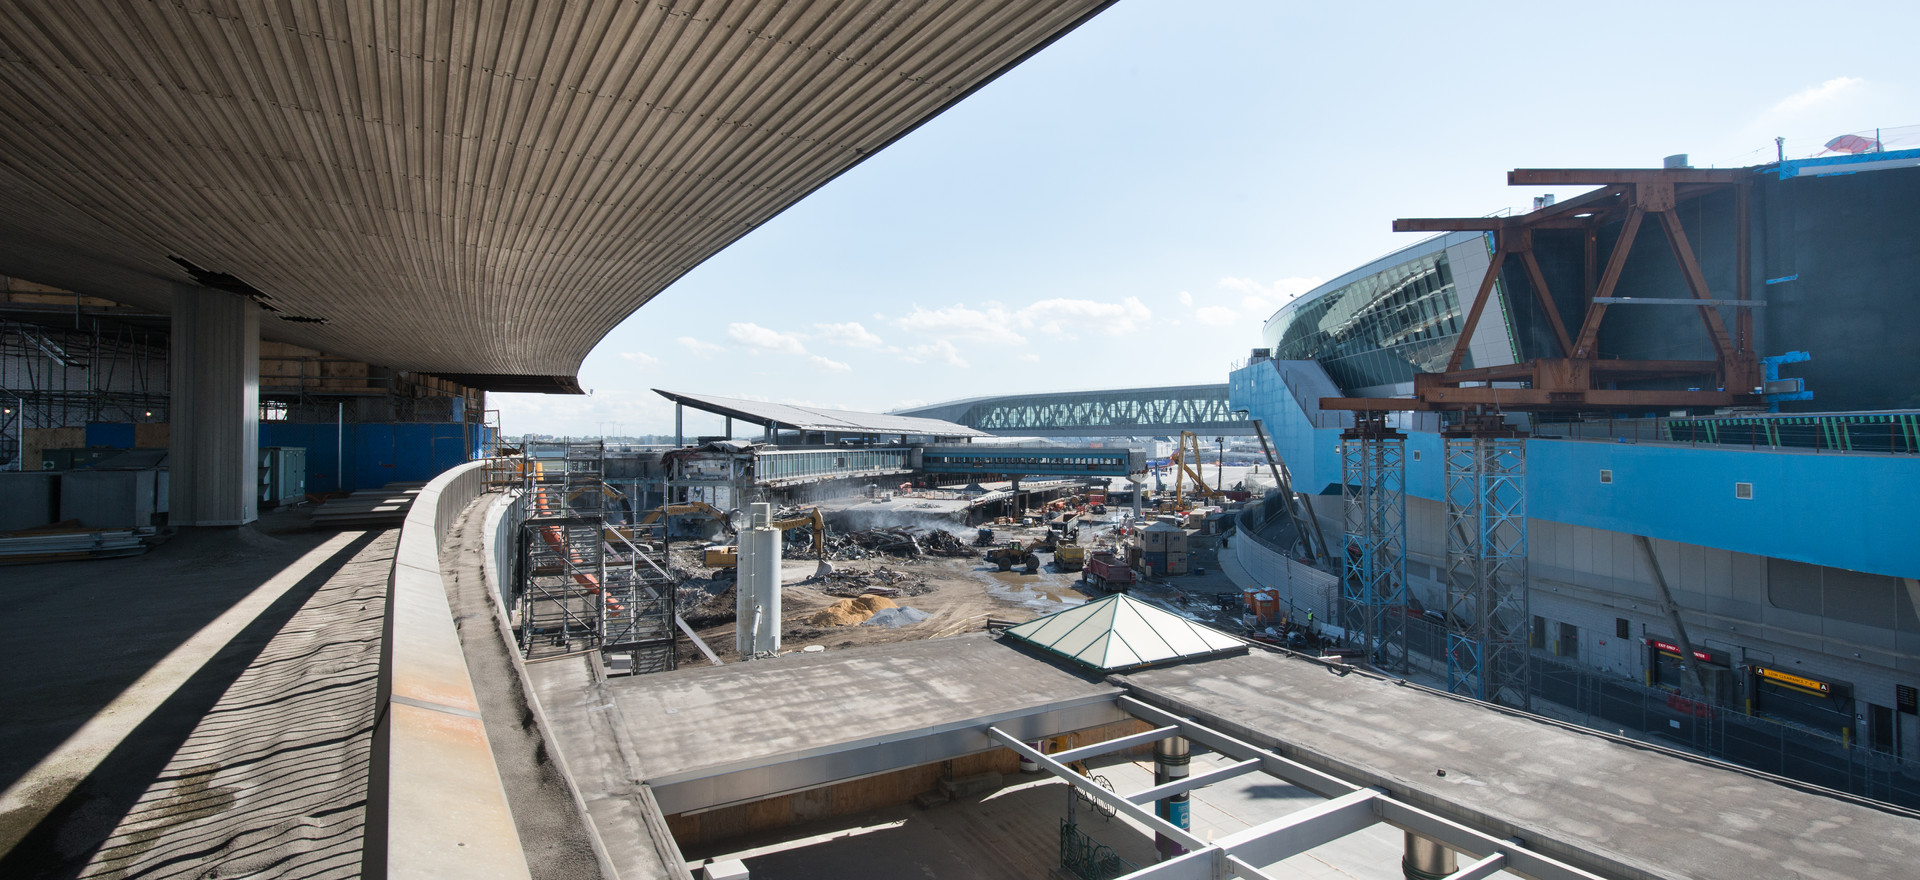 View of steelwork from original terminal building